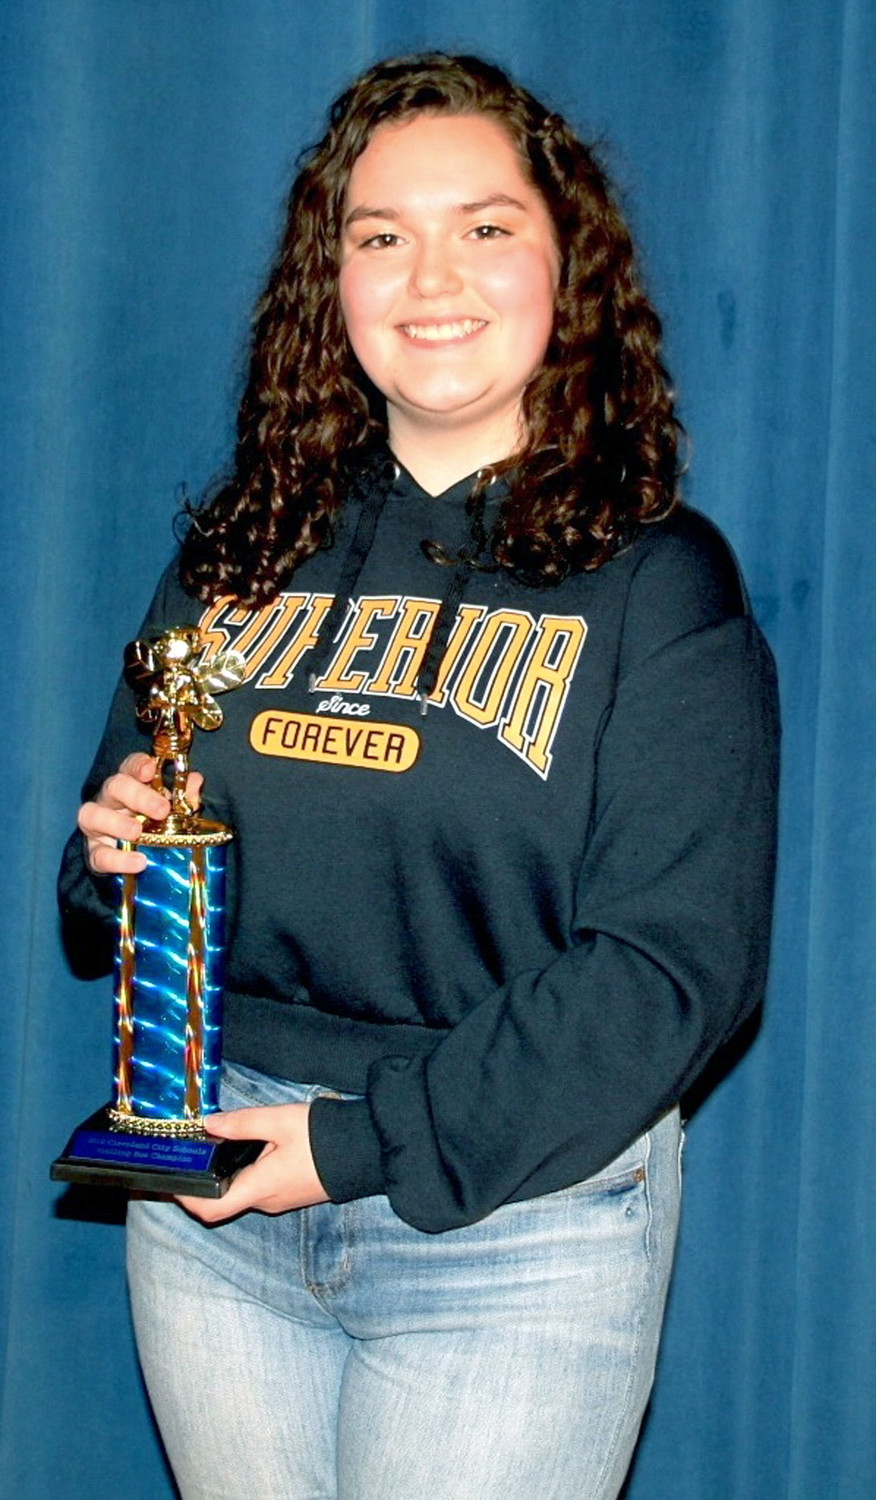 LYRIC MARLER, an eighth-grader at Cleveland Middle School, won the annual Mildred Maupin Spelling Bee on Tuesday to advance to regional competition.